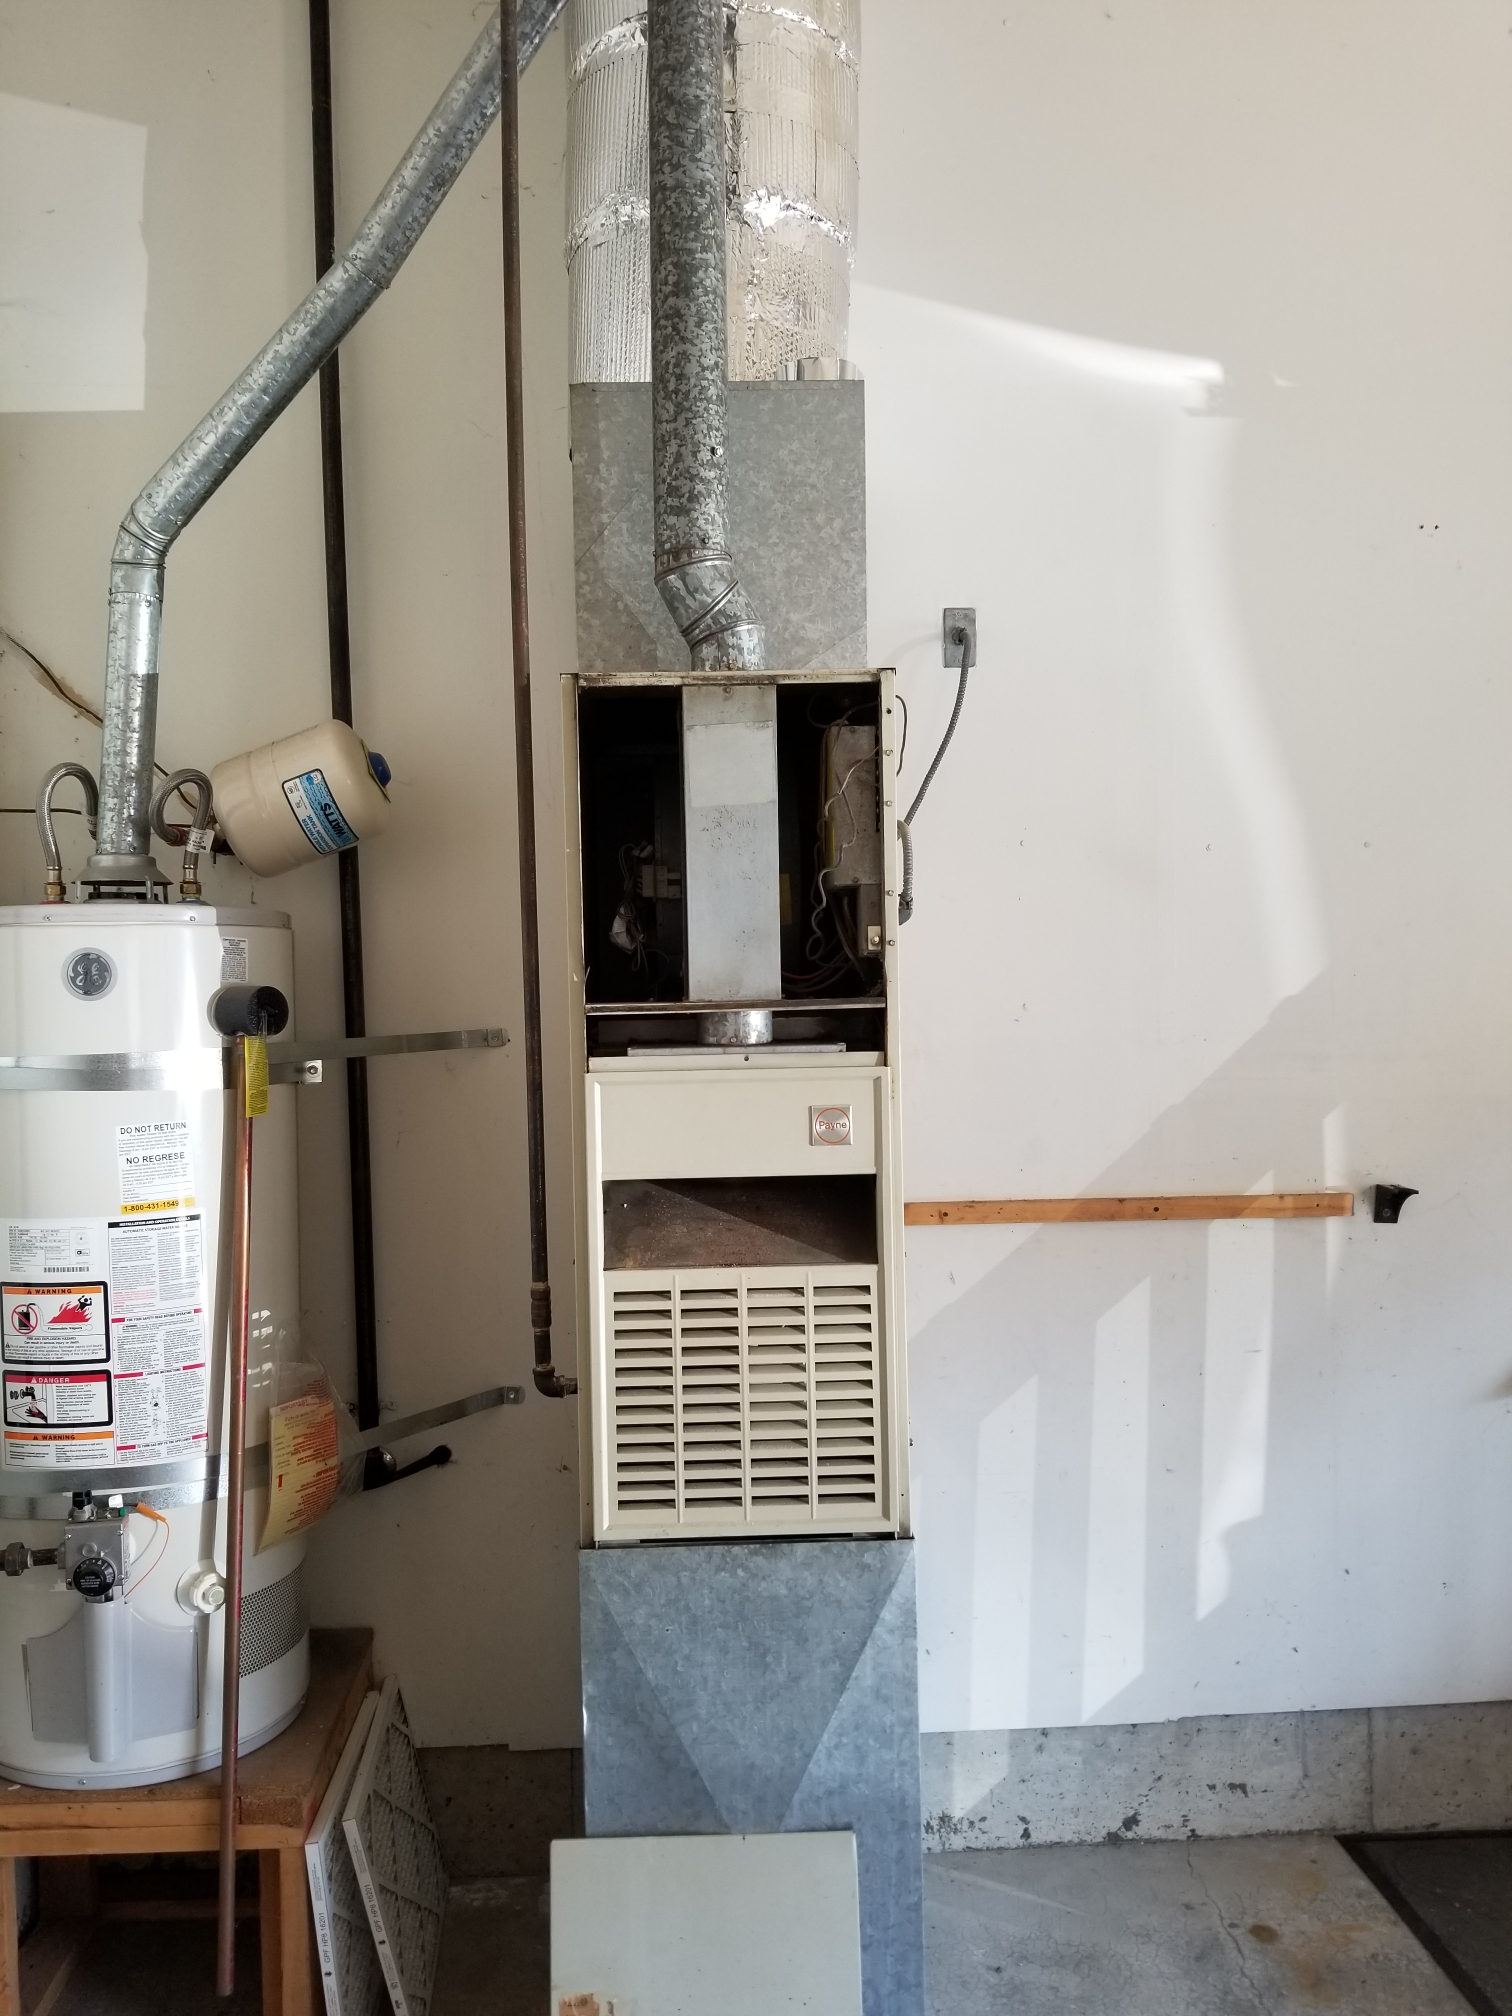 Mukilteo, WA - Estimate on a new gas furnace and air conditioner